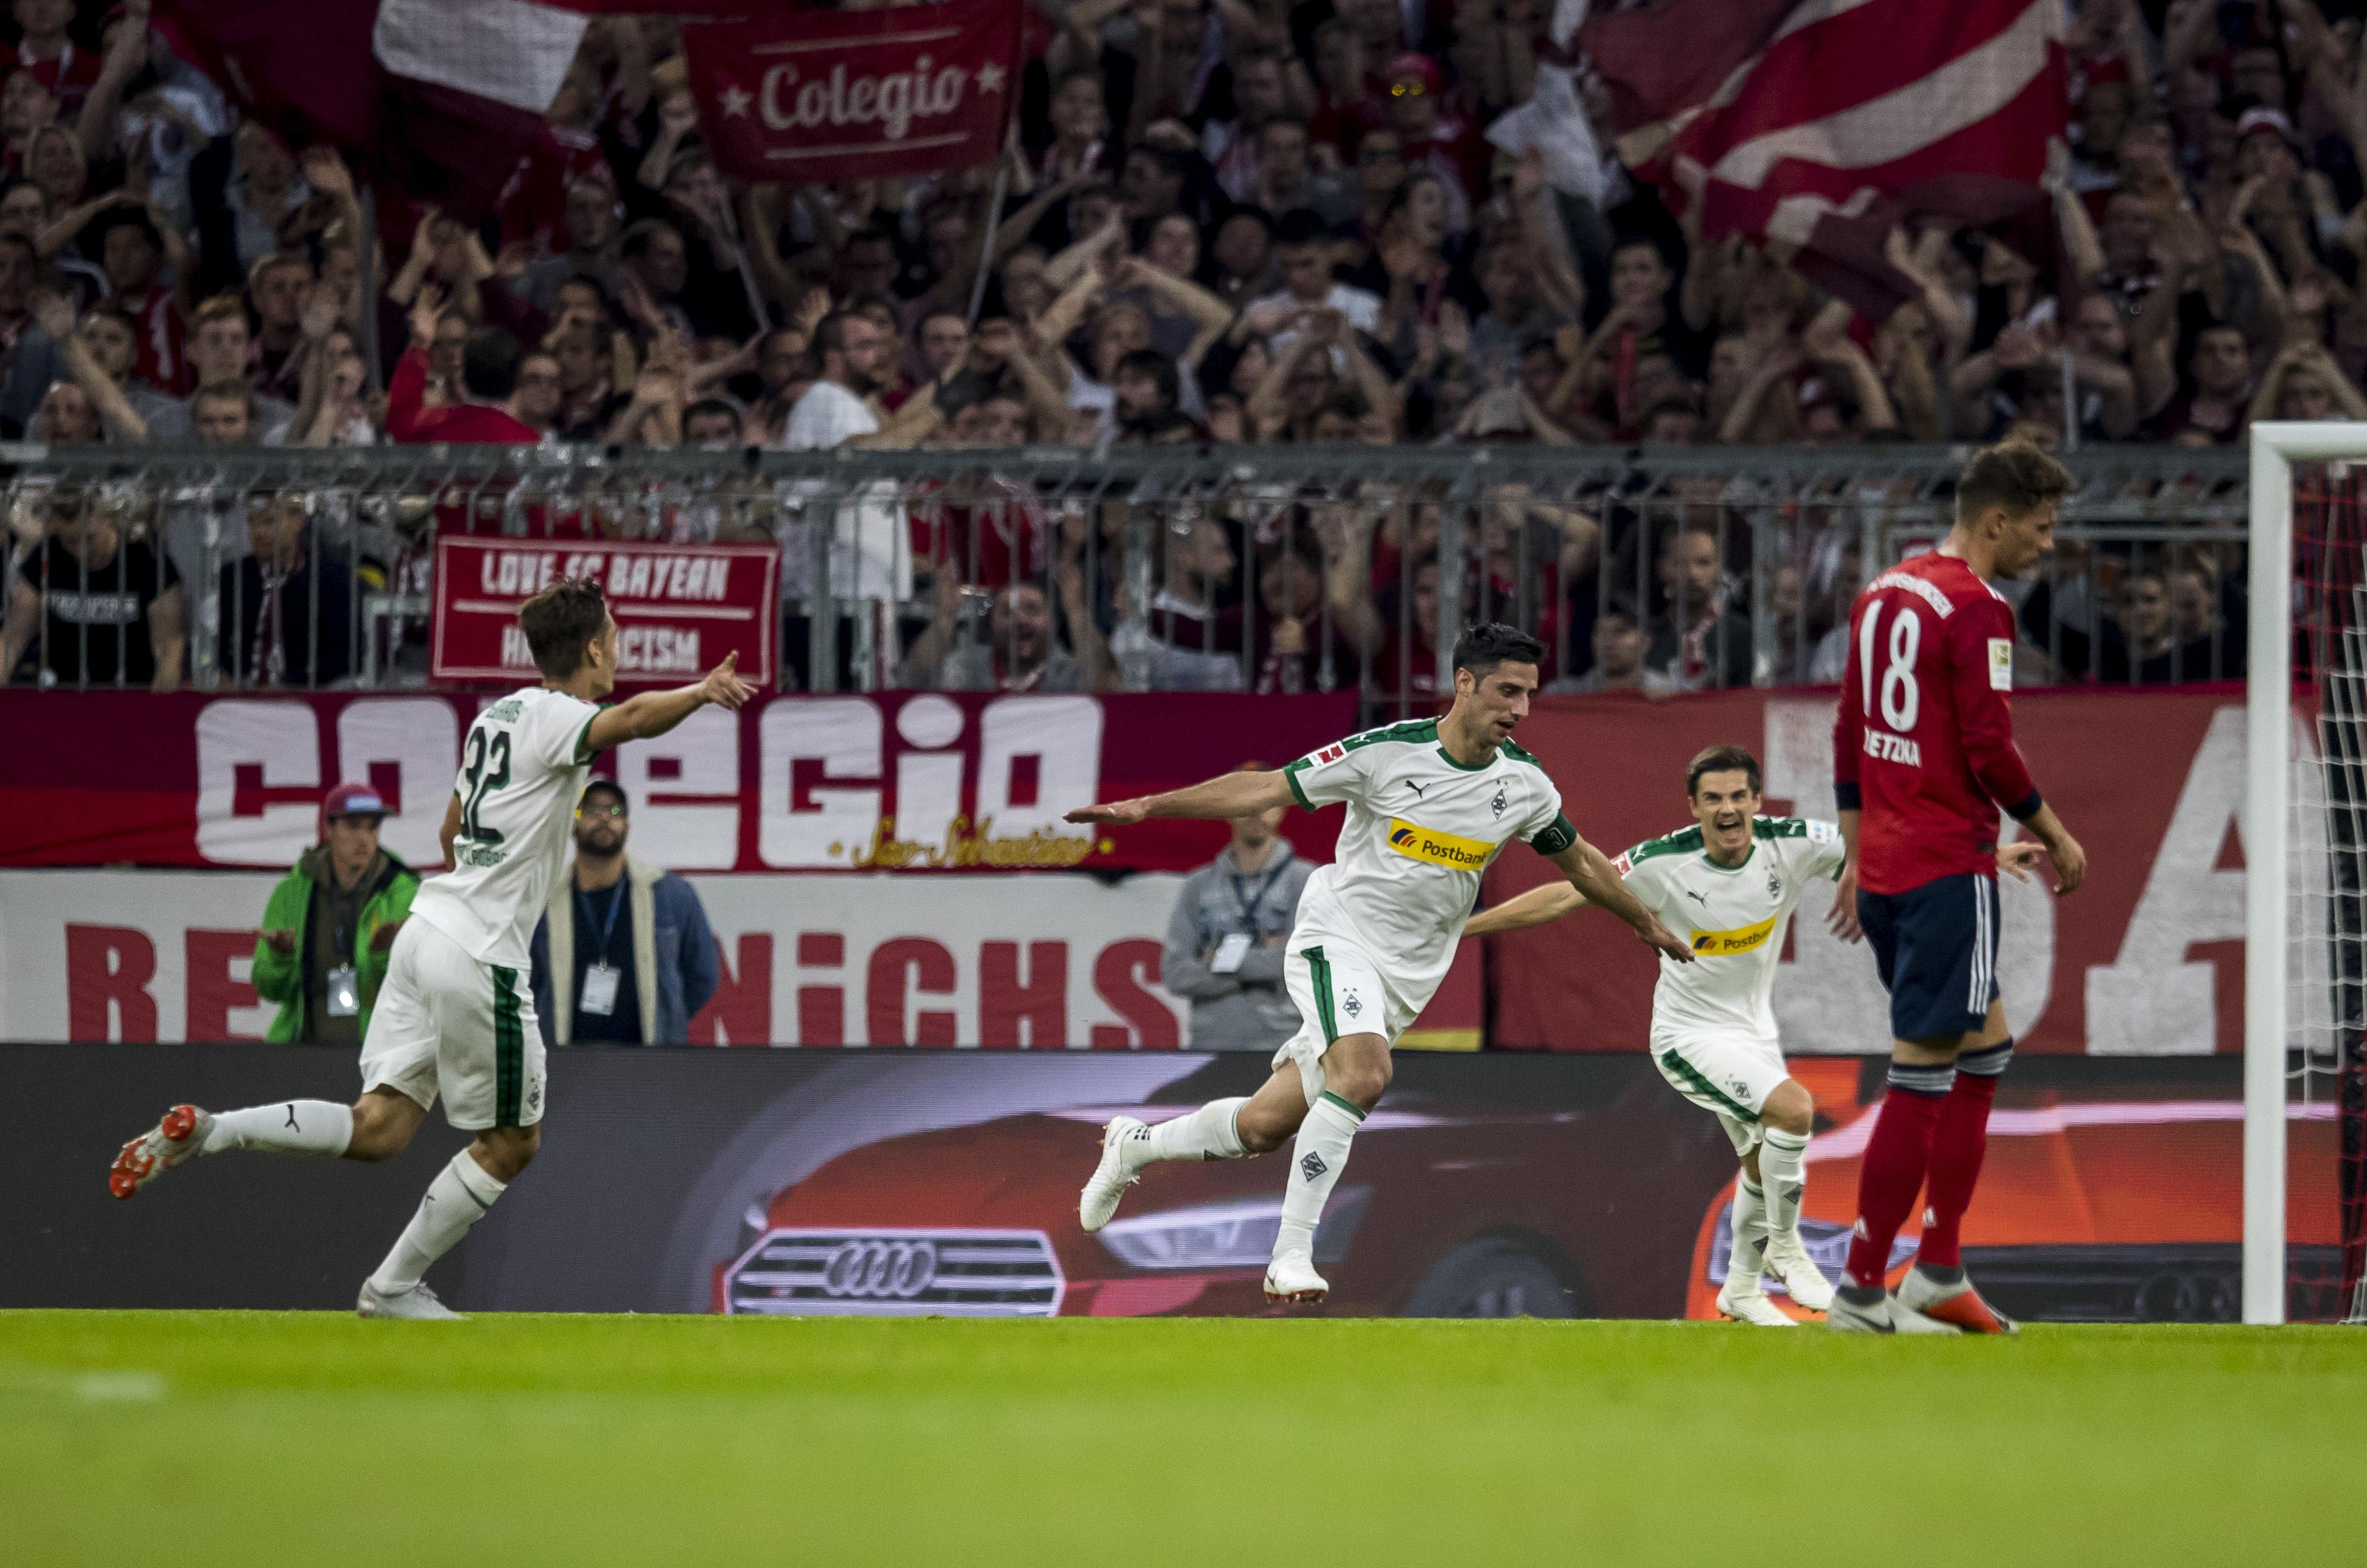 Monchengladbach battered Bayern 3-0 at the weekend